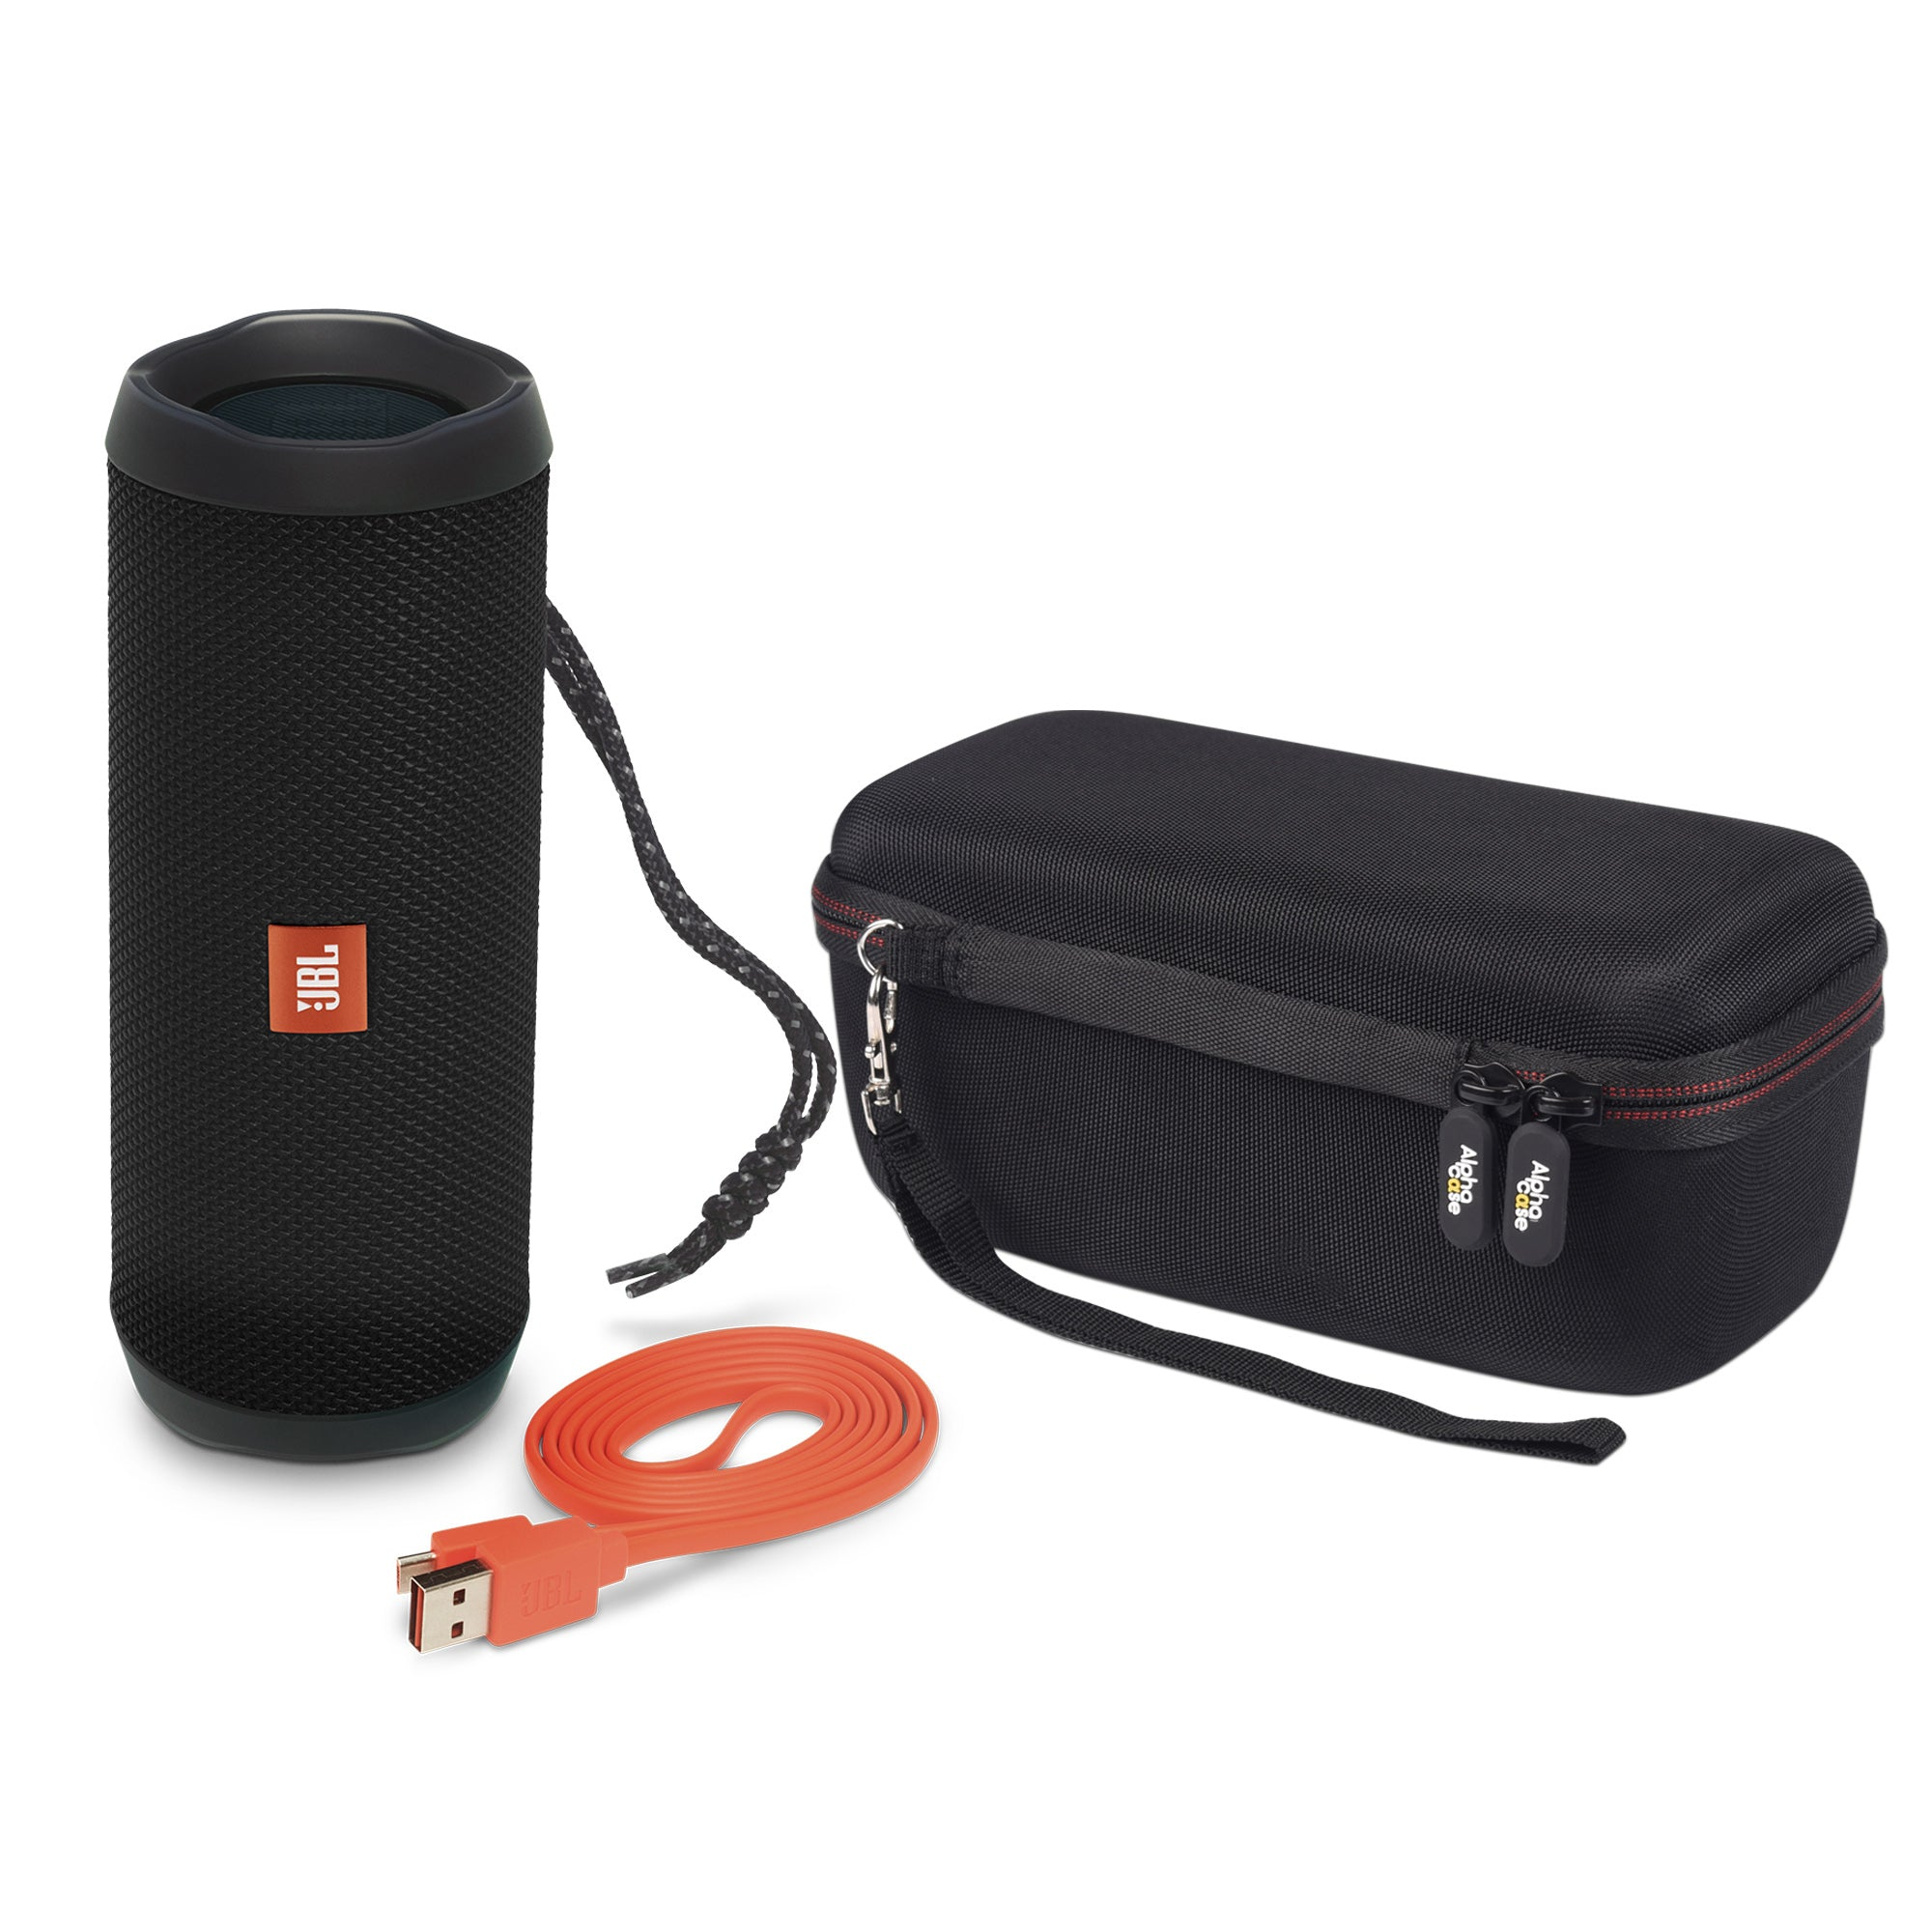 Alphacase JBL Flip Protective Case | Monthly Madness